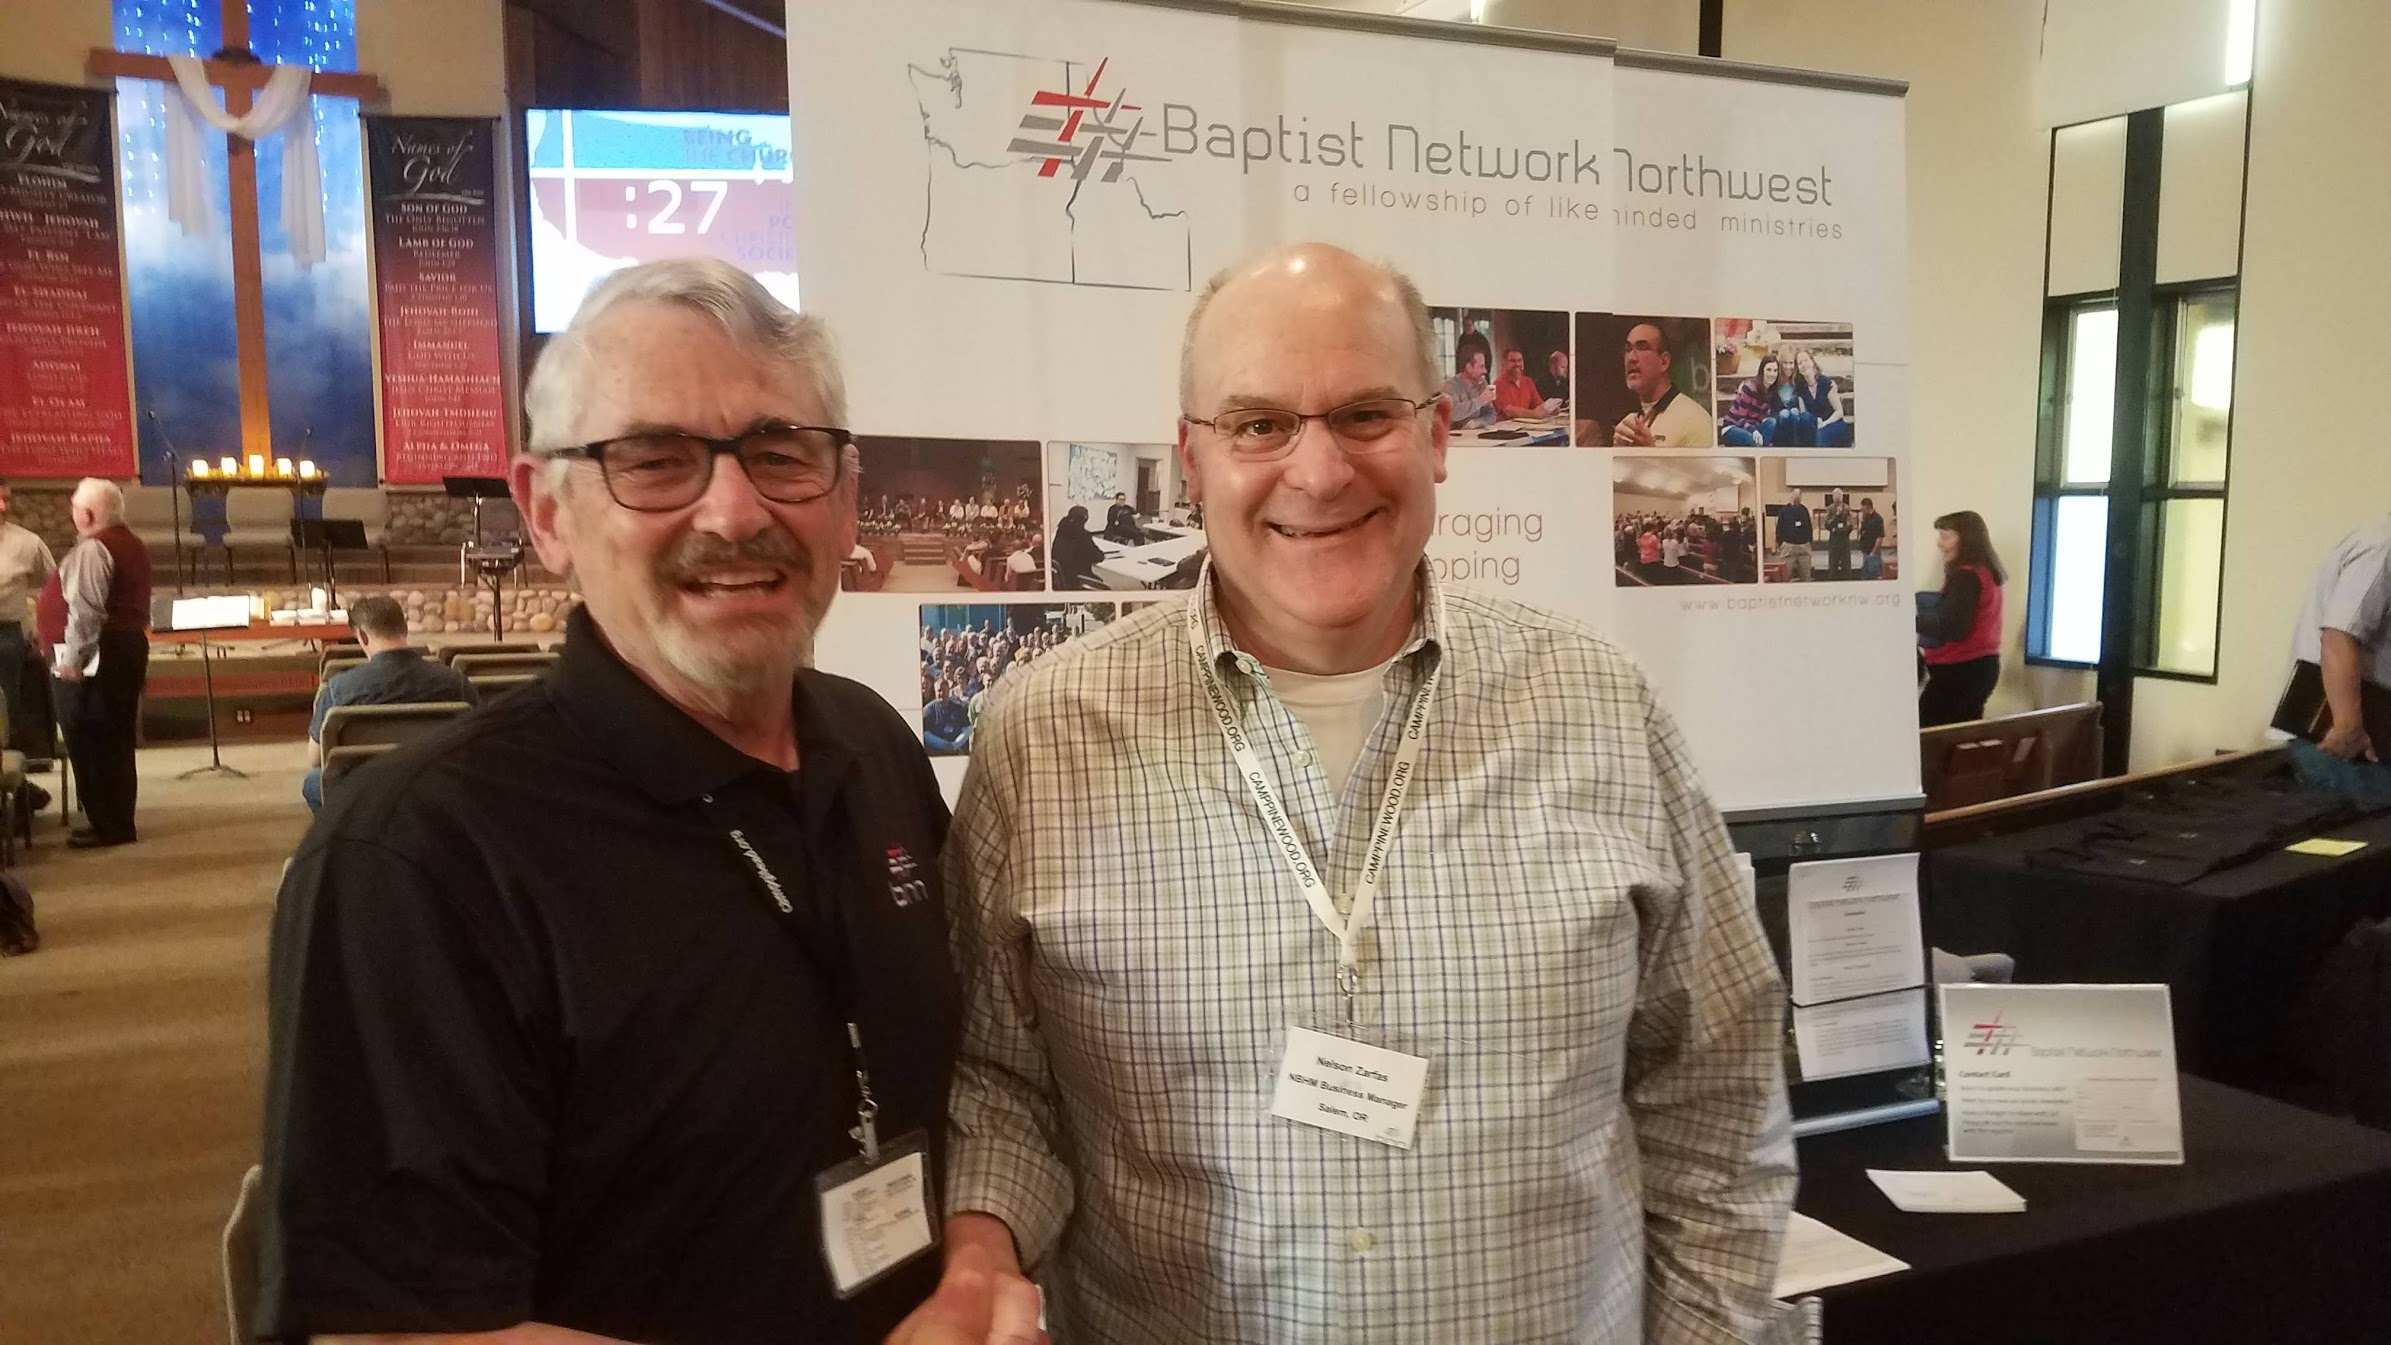 I am standing with Nelson Zarfas our BNN business manager and loan officer last week at our conference in Everett. We so appreciate the work BNN has done to make it possible for us to be able to help cover the cost of building. By the way, thanks to them for the free BNN polo shirt too. :-)